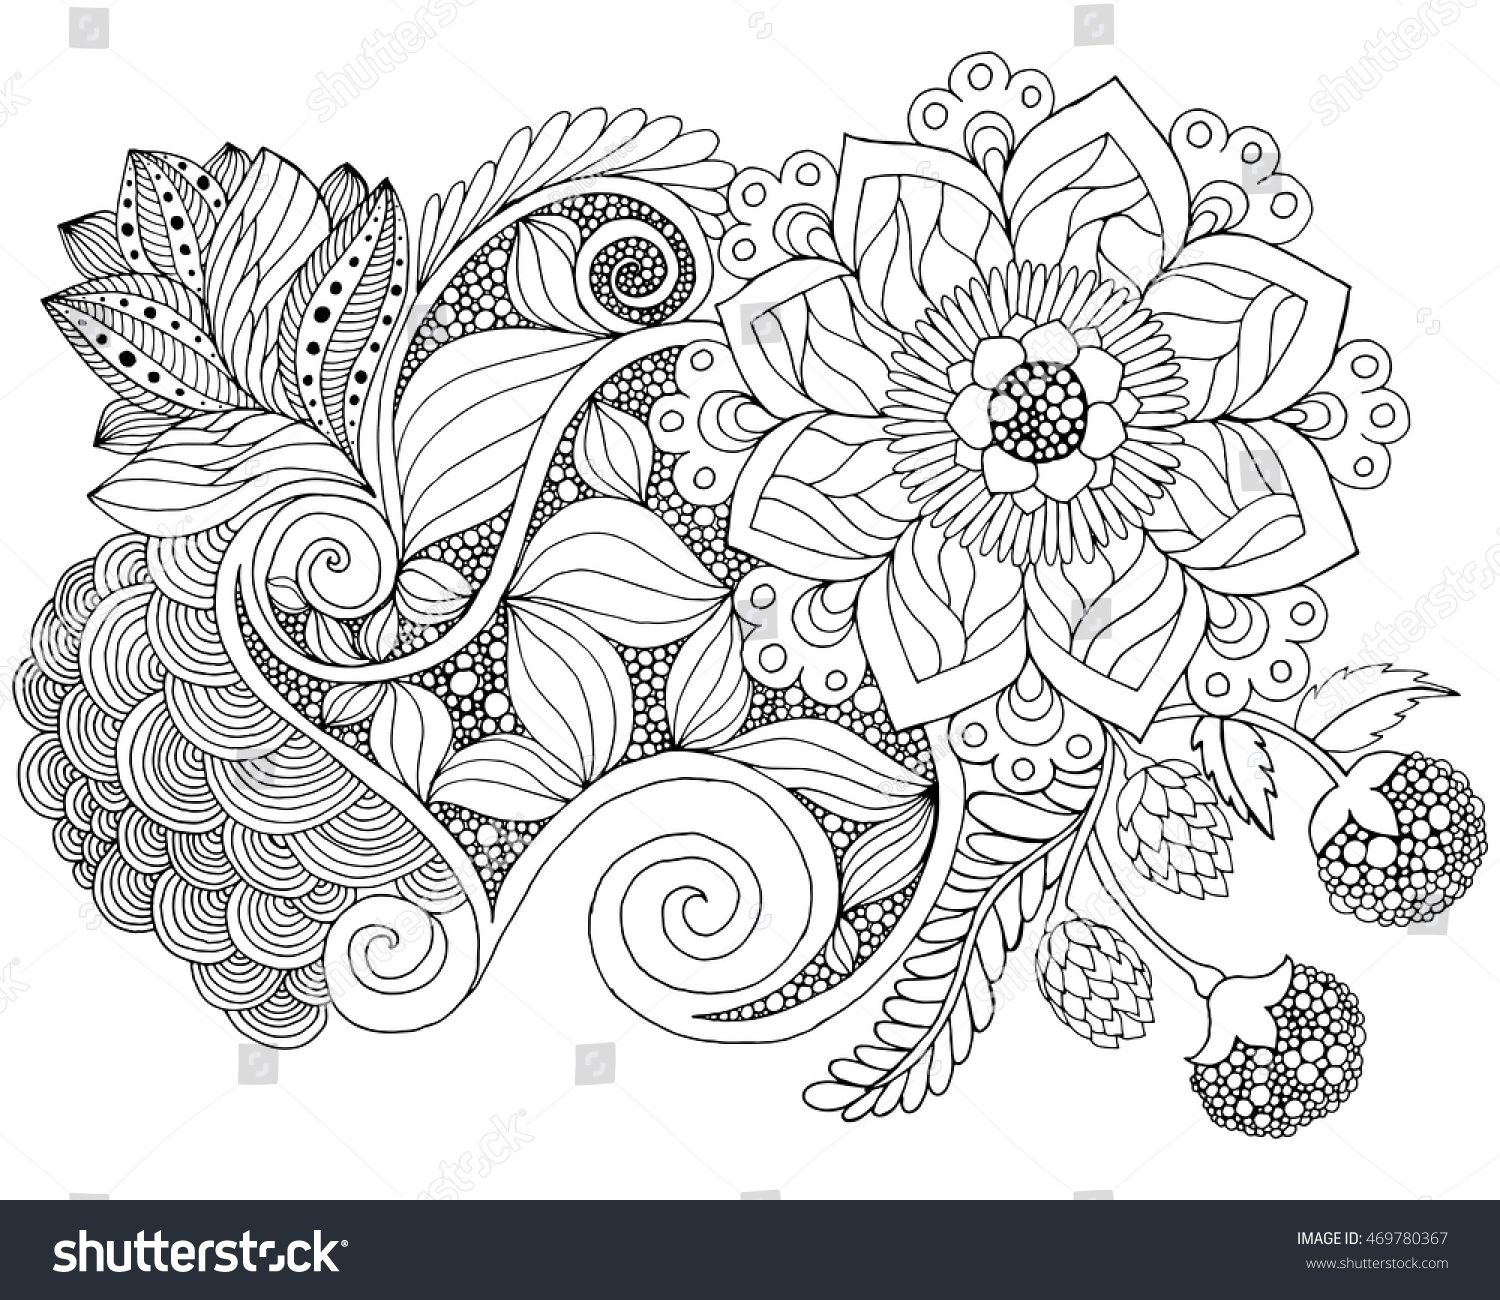 Fantasy Flowers Coloring Page Hand Drawn Stock Vector 469780367